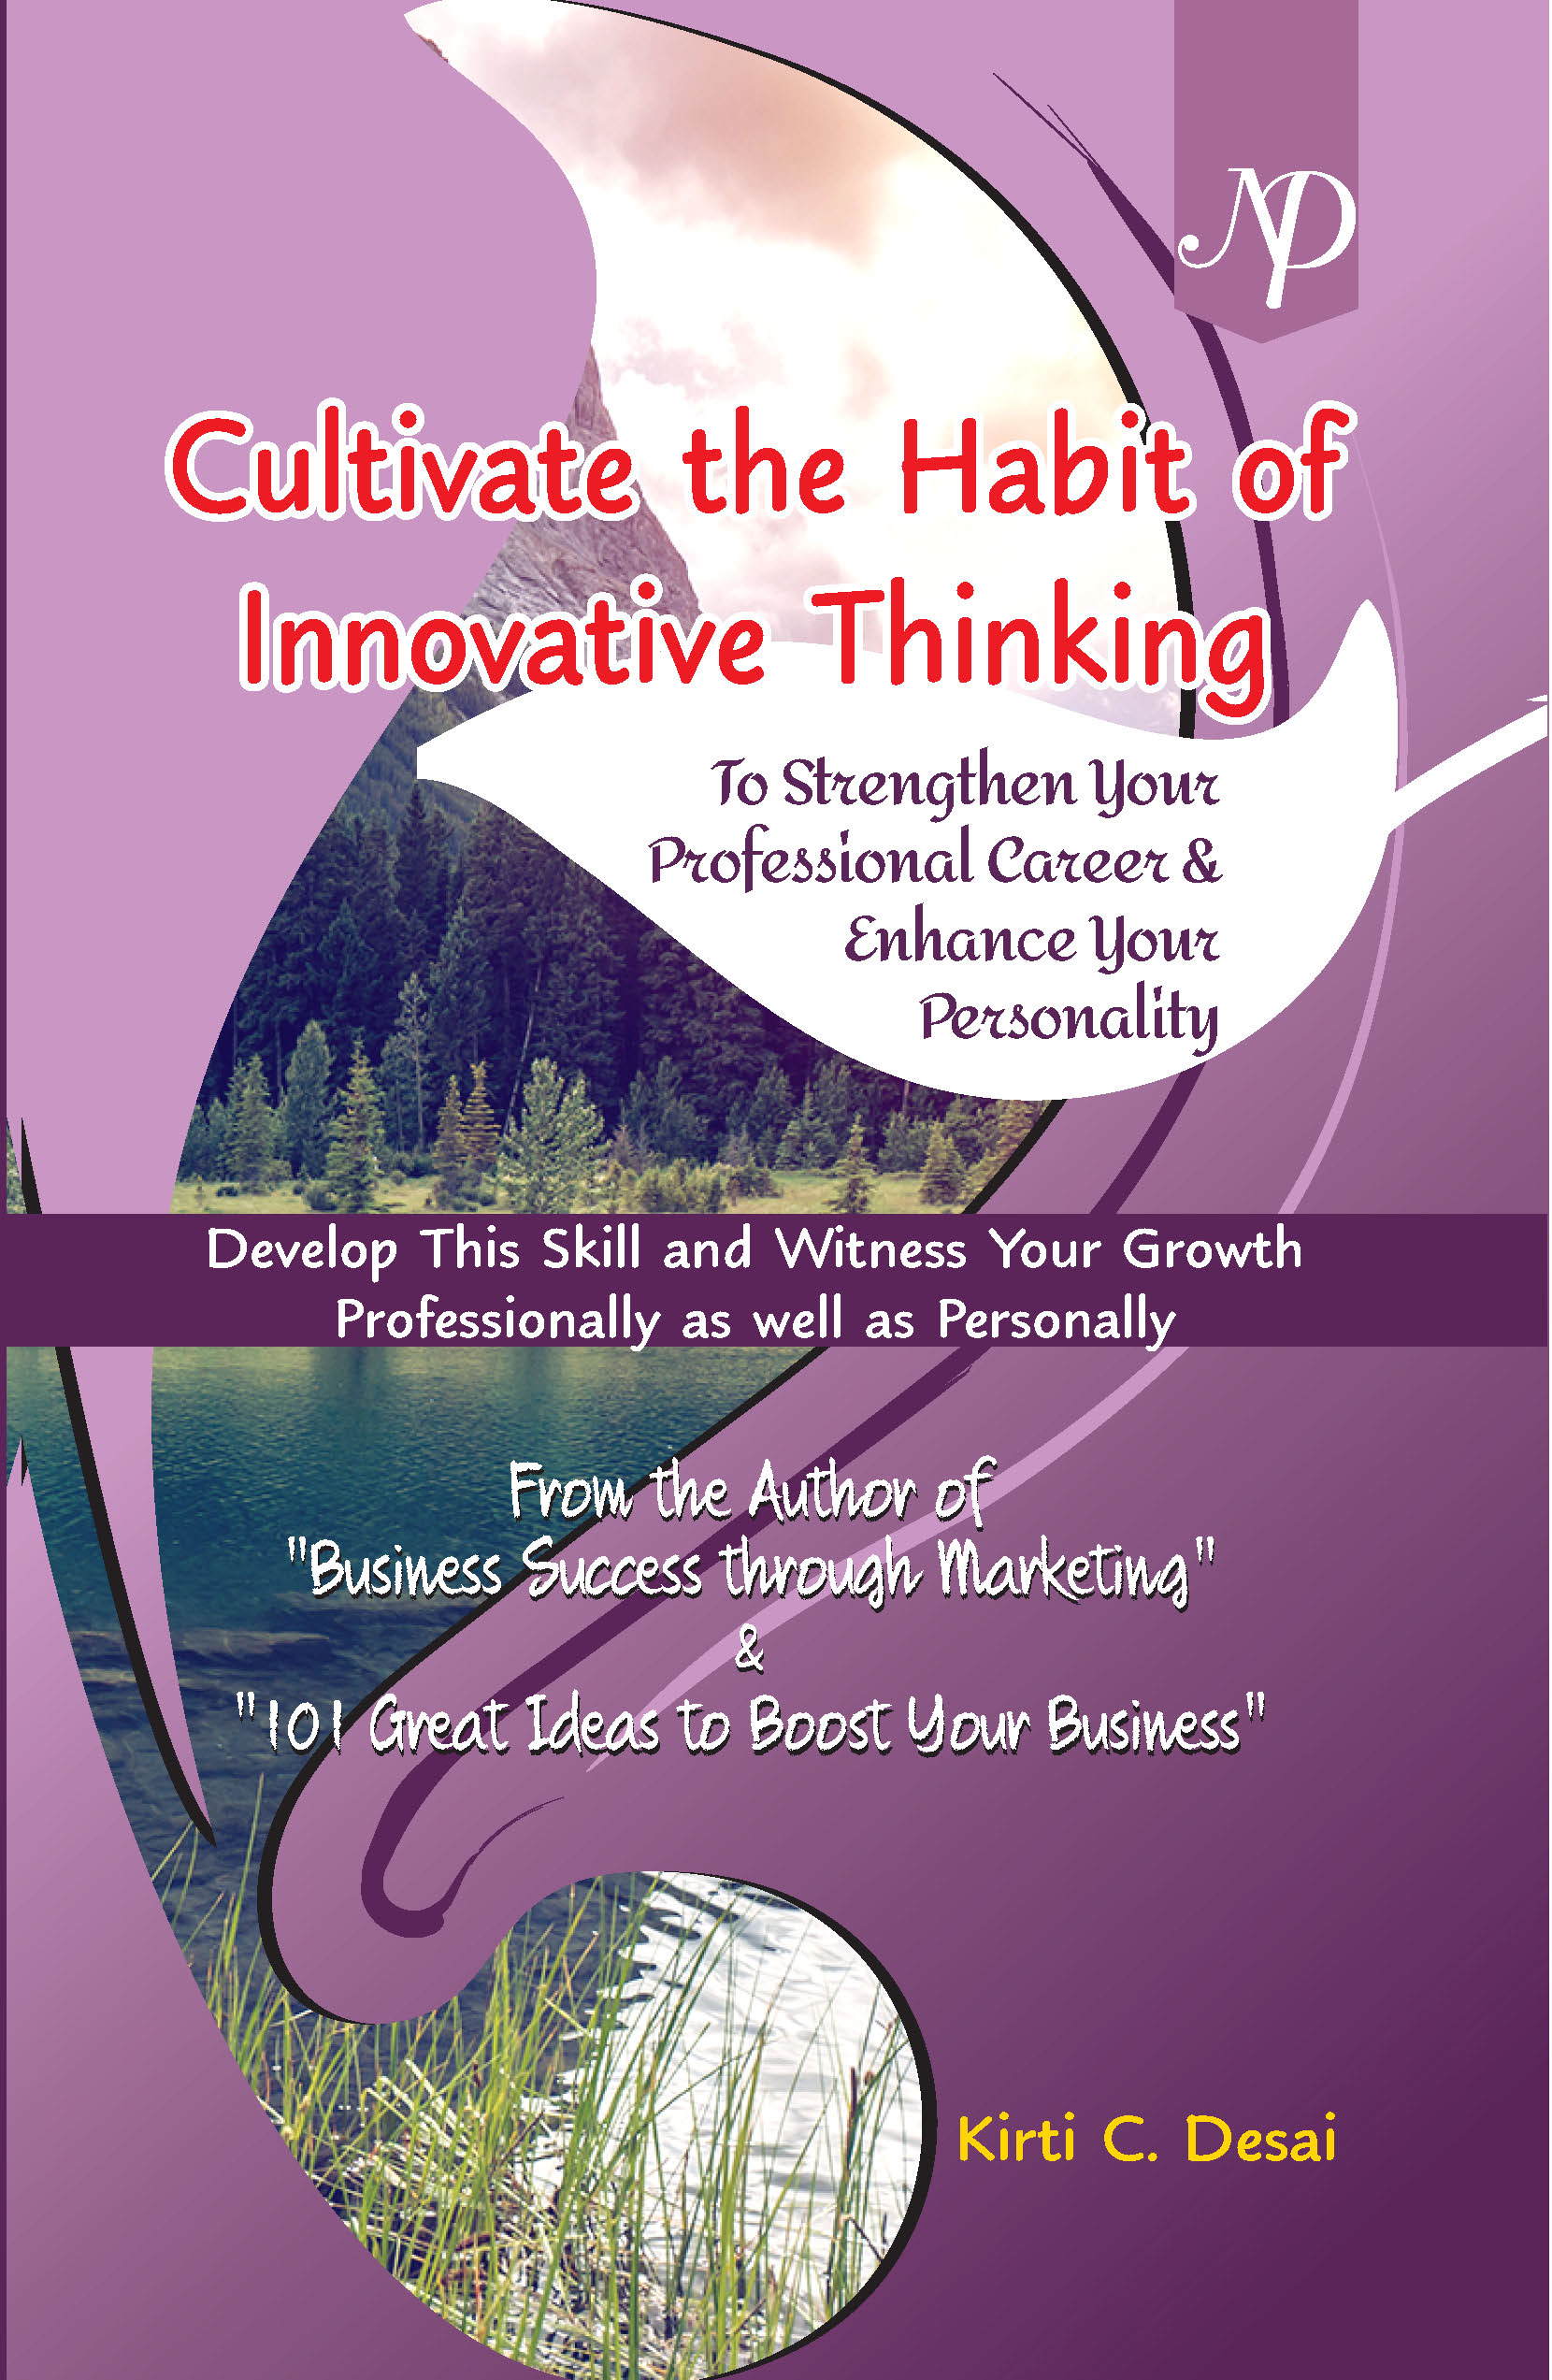 Cultivate the Habit of Innovative Thinking: To Strenghten your proffesional Career & Enhance your Personality